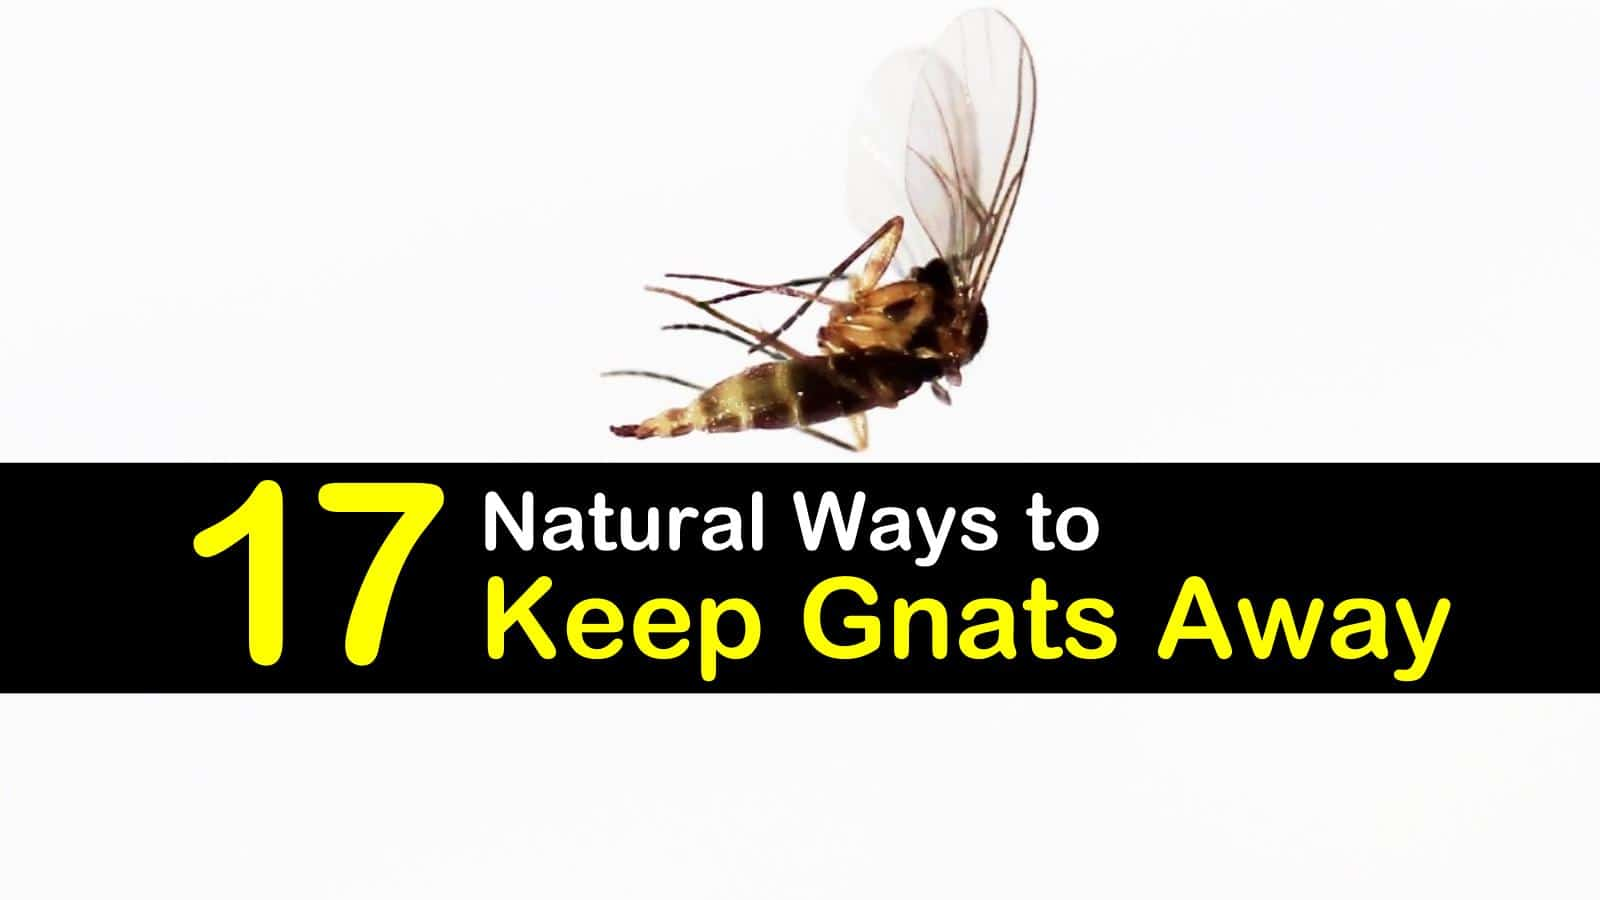 17 Natural Ways to Keep Gnats Away